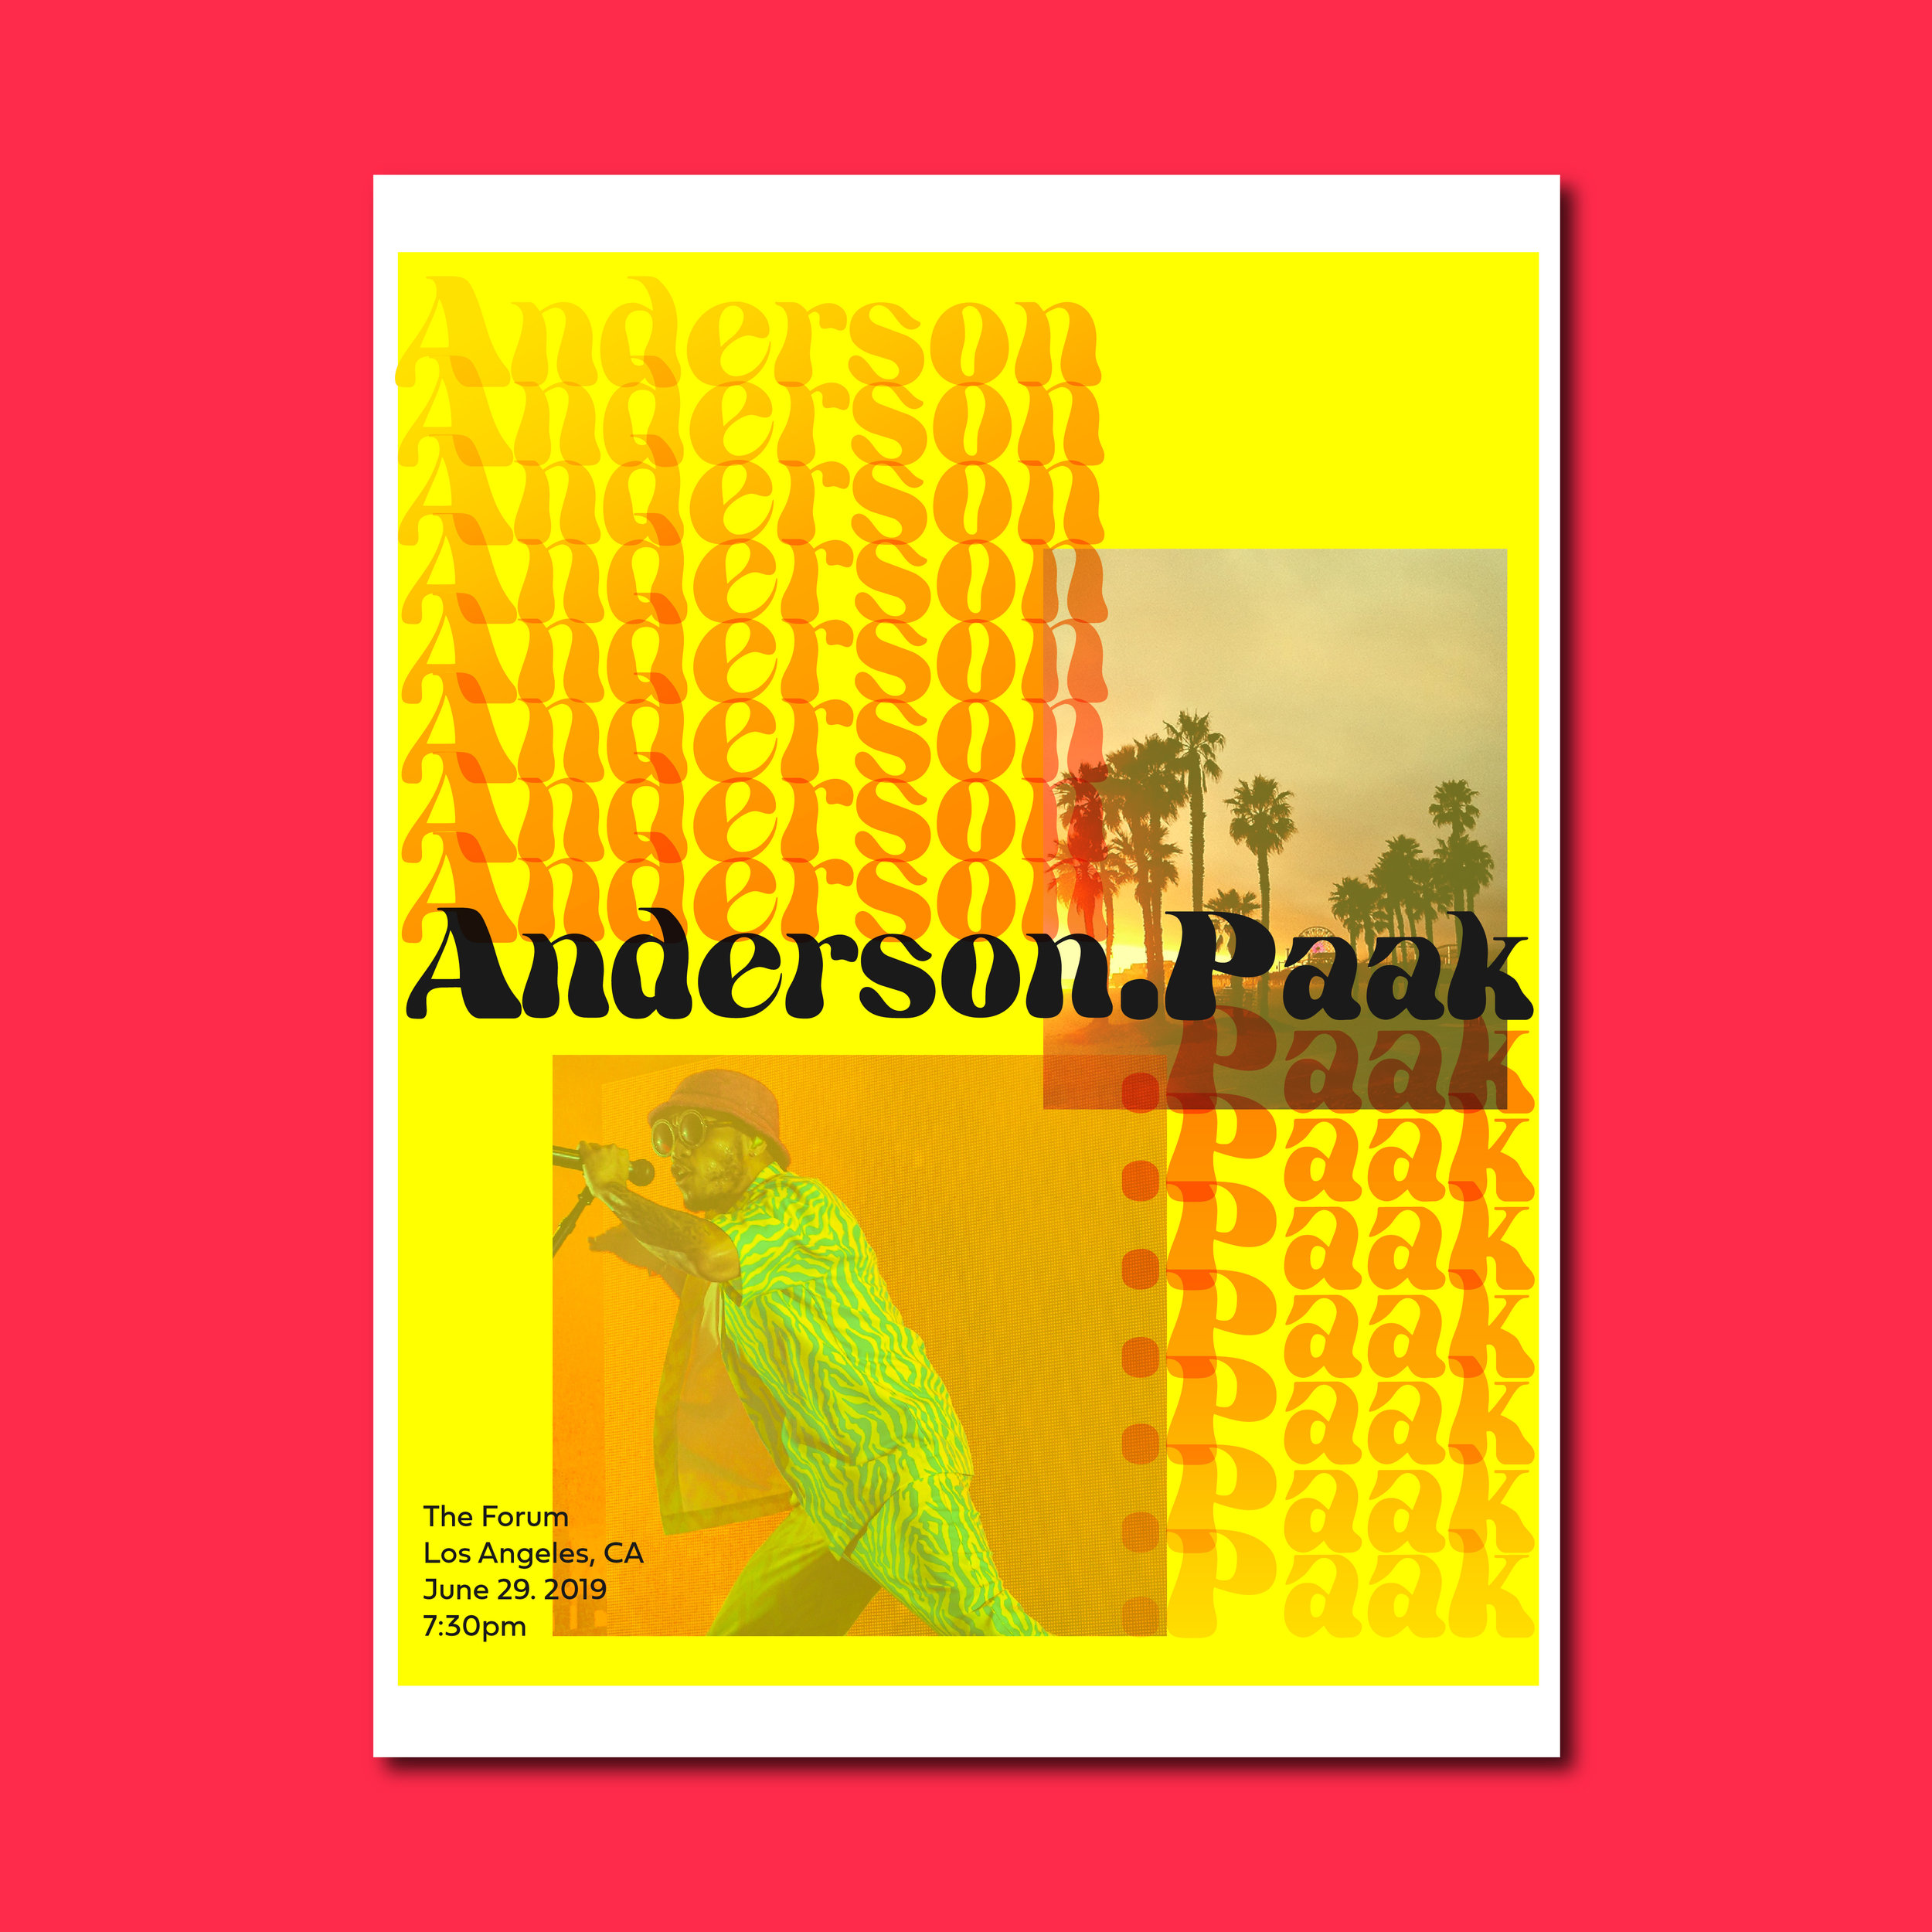 Anderson .Paak Poster